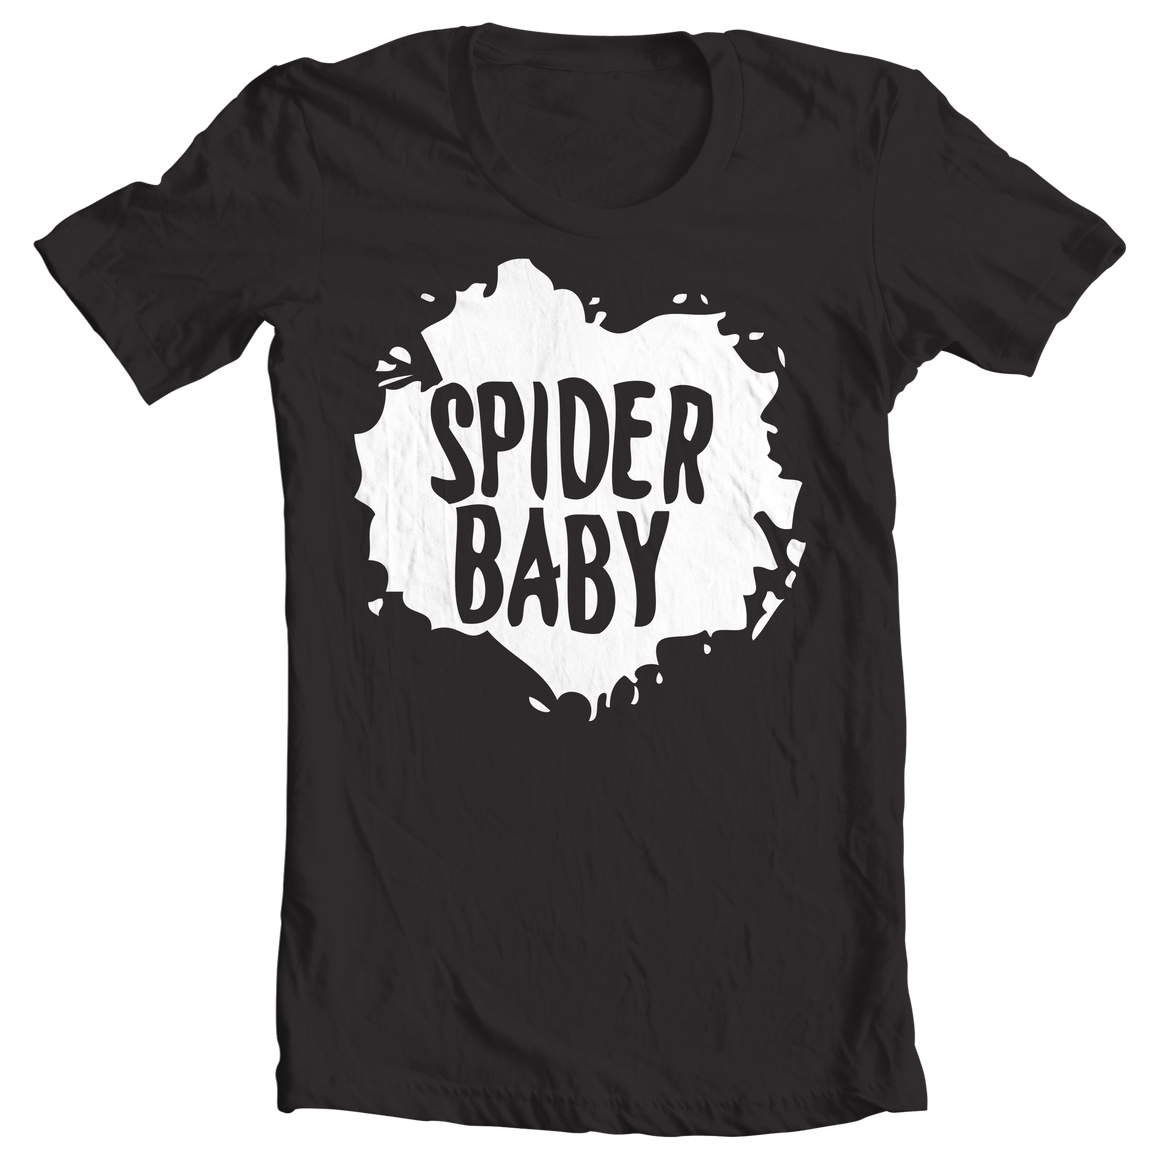 Spider Baby Male Tee - The Great Tshirt Store